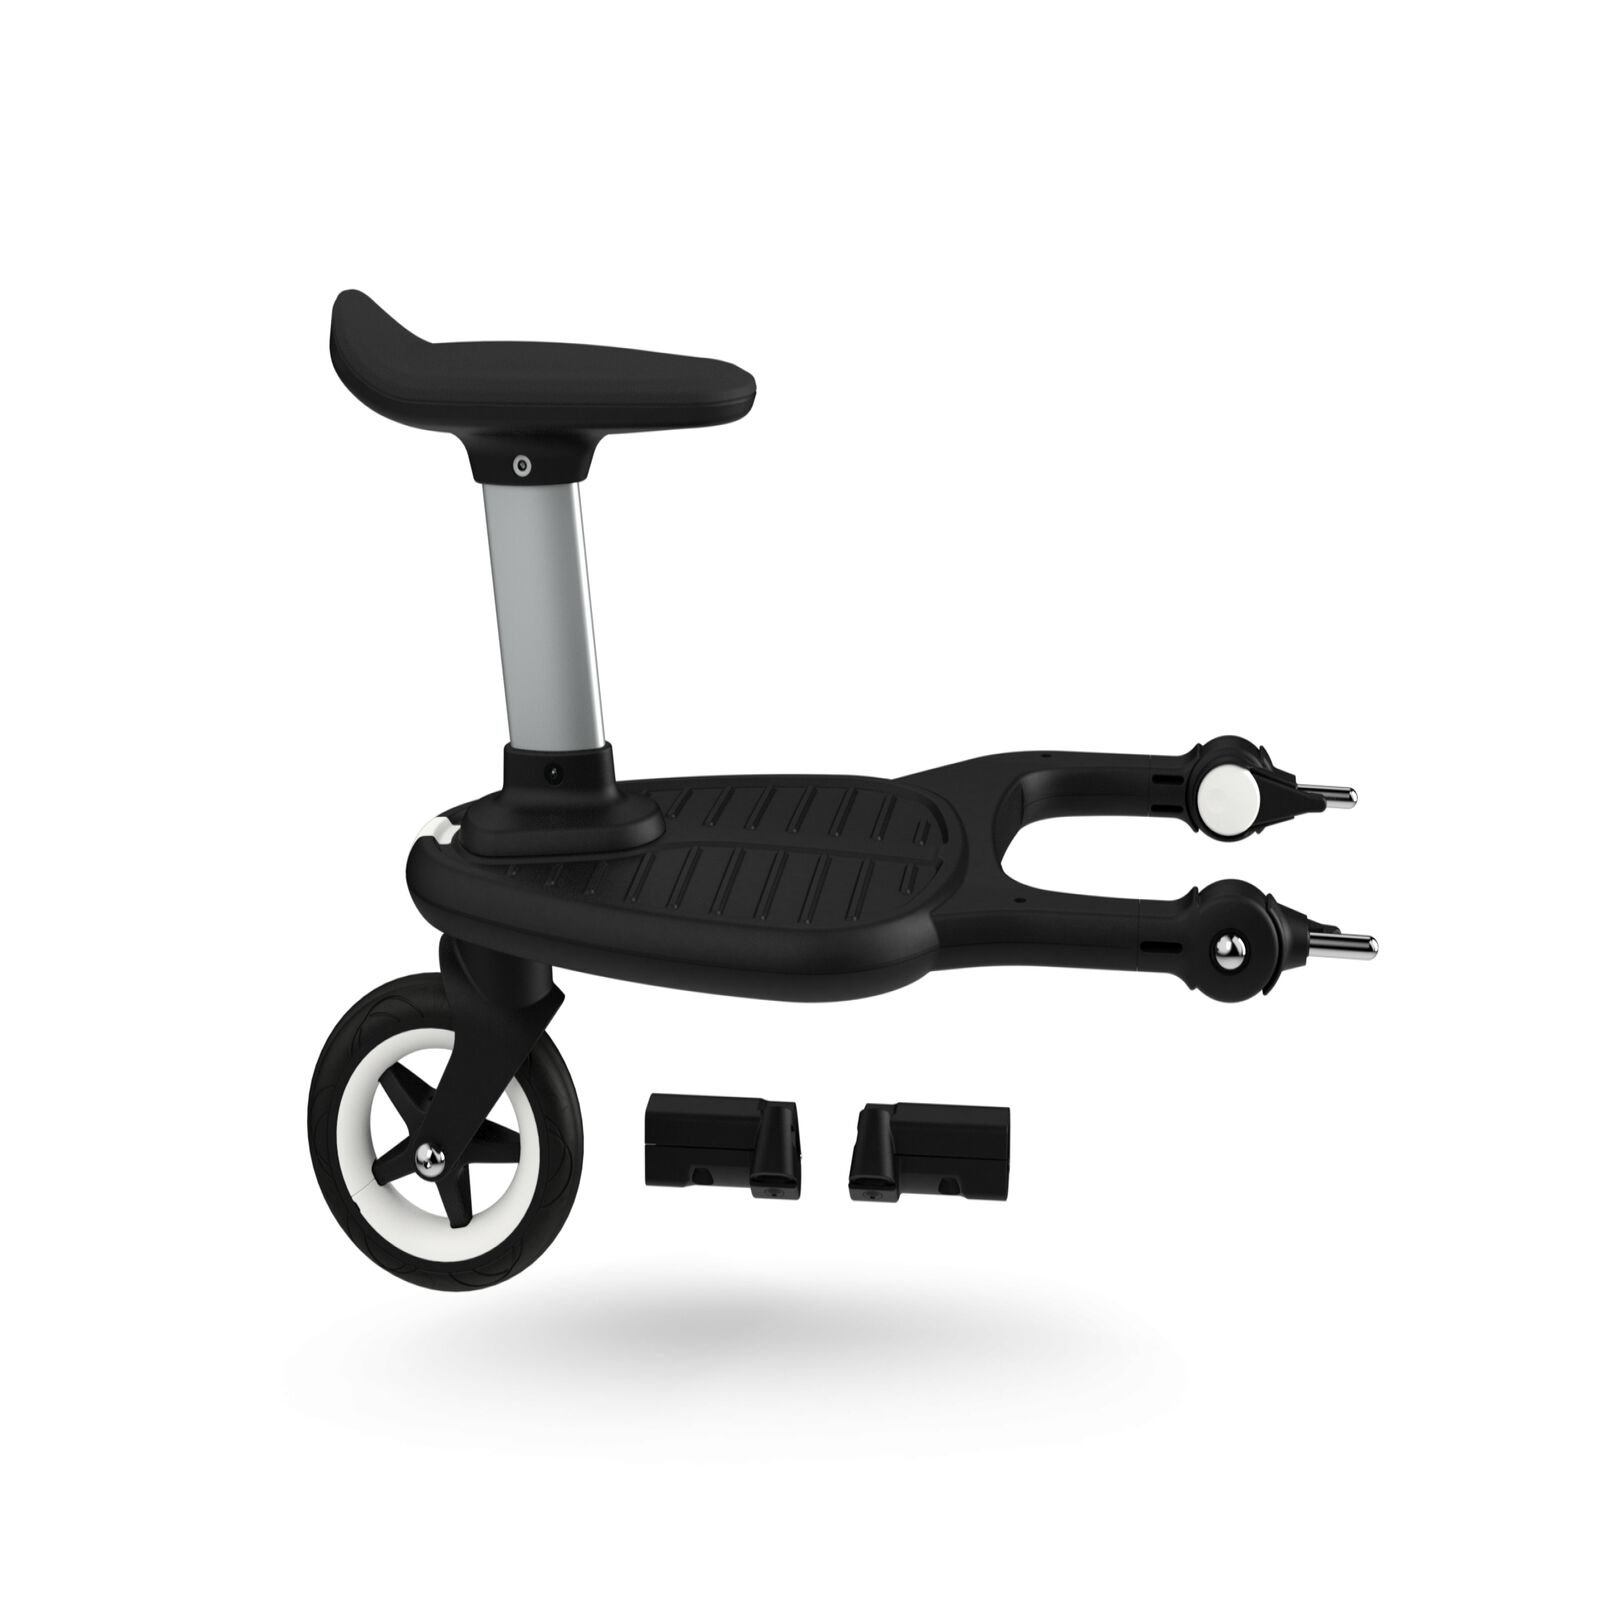 Bugaboo Cameleon 3 adapter for Bugaboo comfort wheeled board